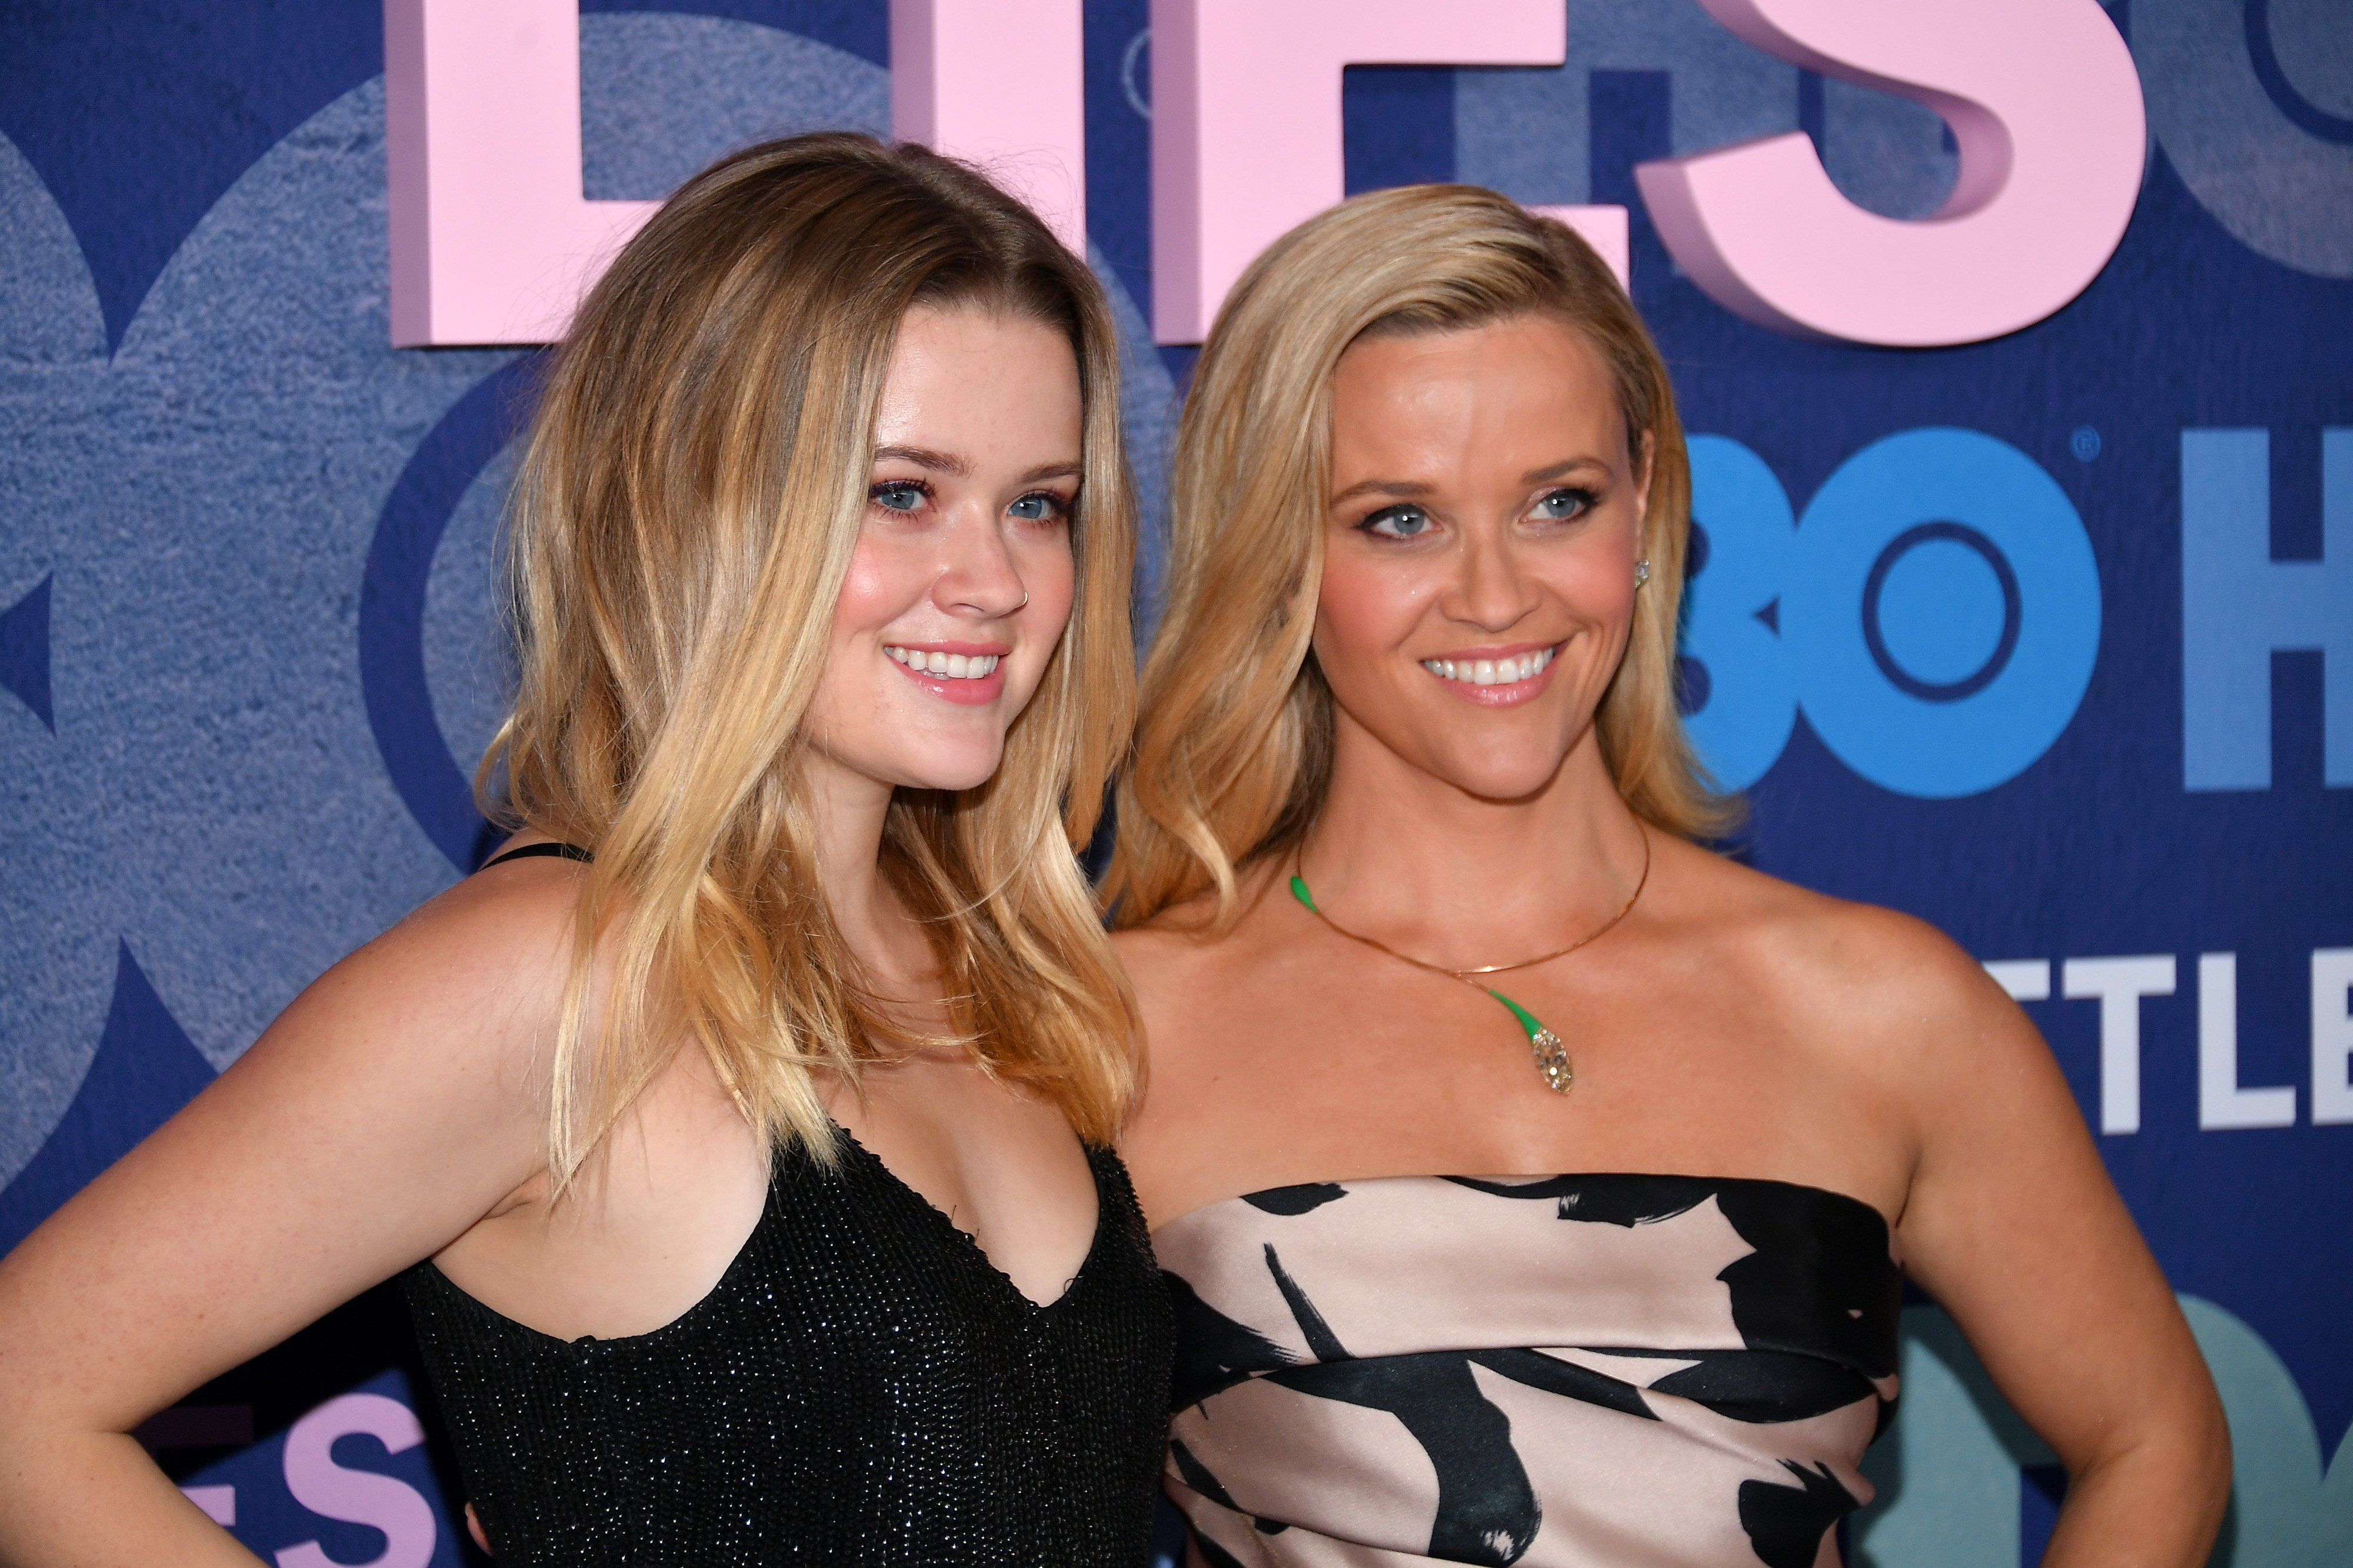 """Ava Phillippe and Reese Witherspoon attend the """"Big Little Lies"""" Season 2 Premiere at Jazz at Lincoln Center on May 29, 2019 in New York City. 